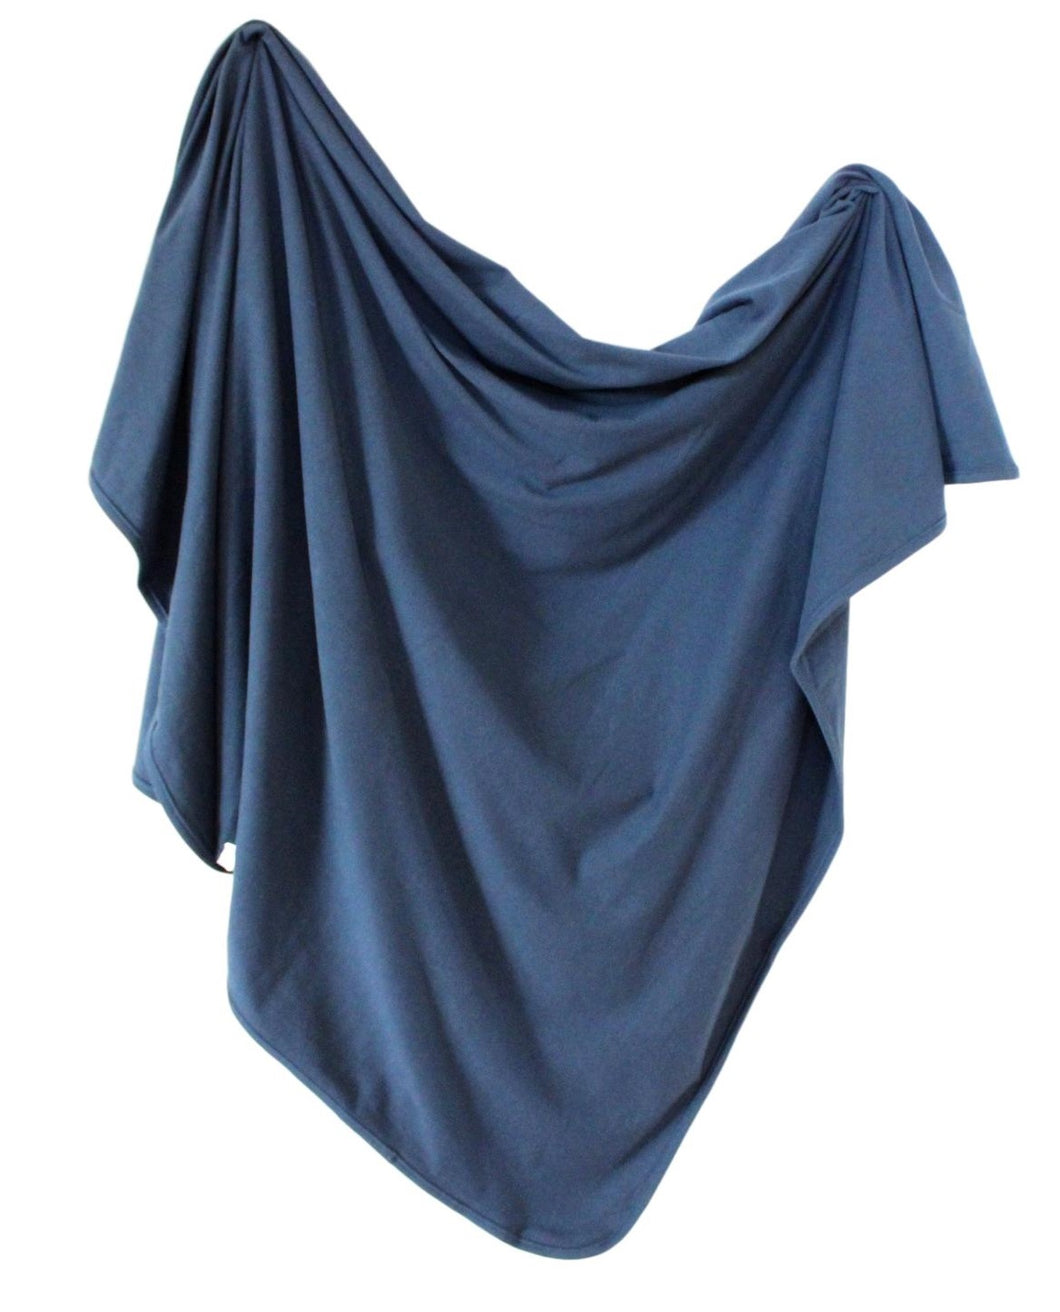 Organic Cotton Swaddle - Navy